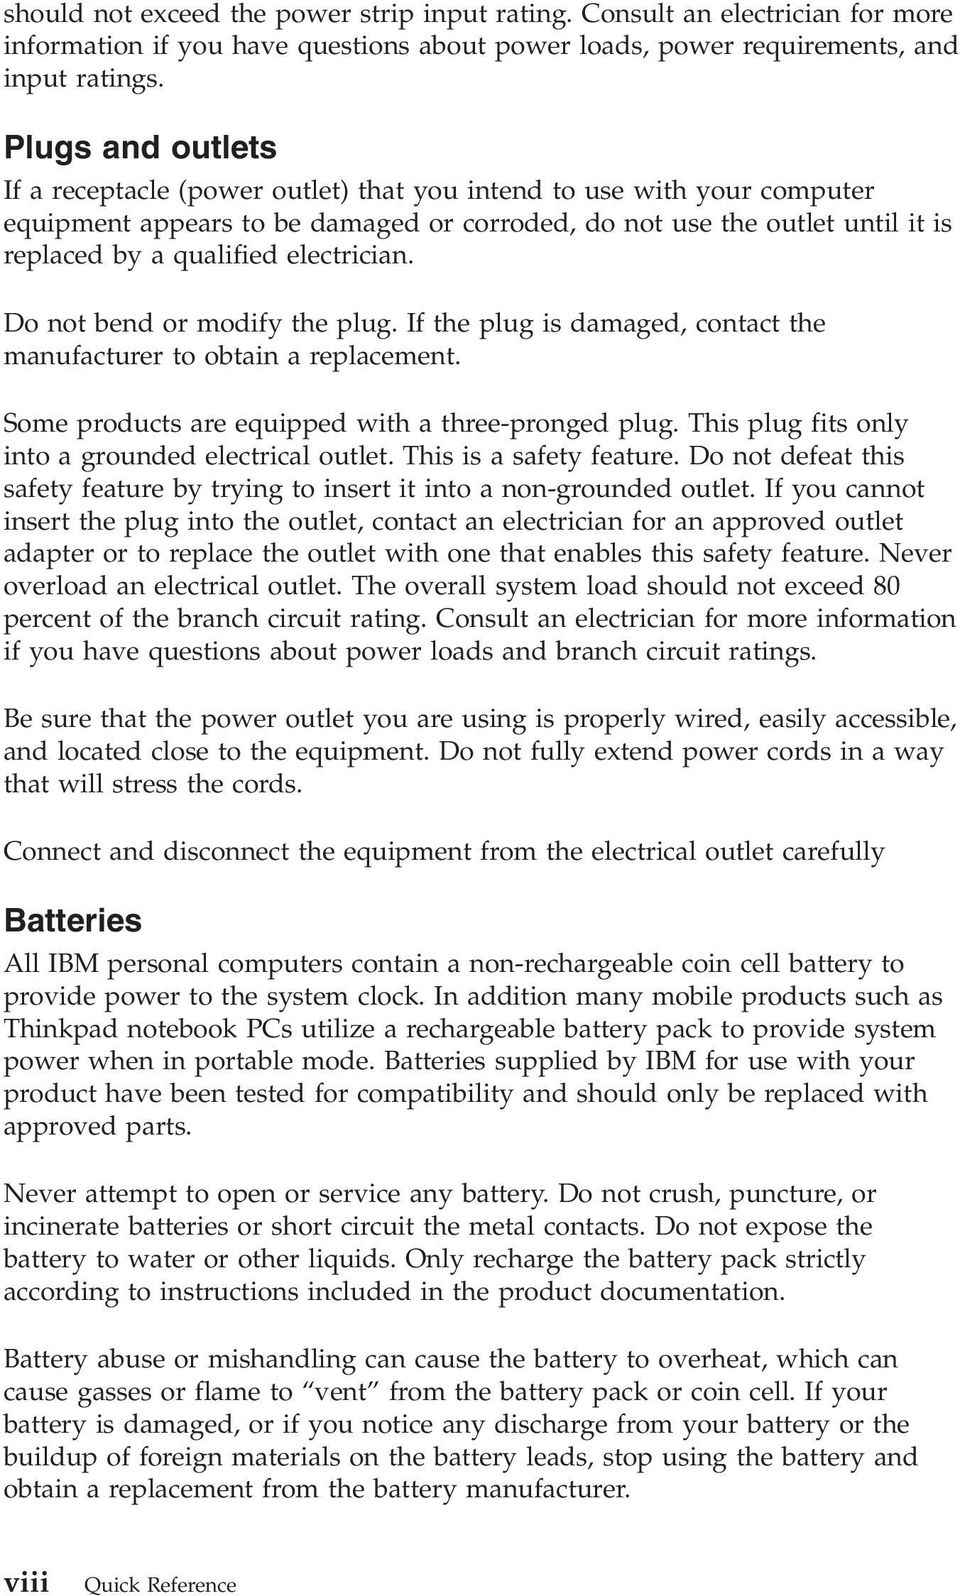 electrician. Do not bend or modify the plug. If the plug is damaged, contact the manufacturer to obtain a replacement. Some products are equipped with a three-pronged plug.